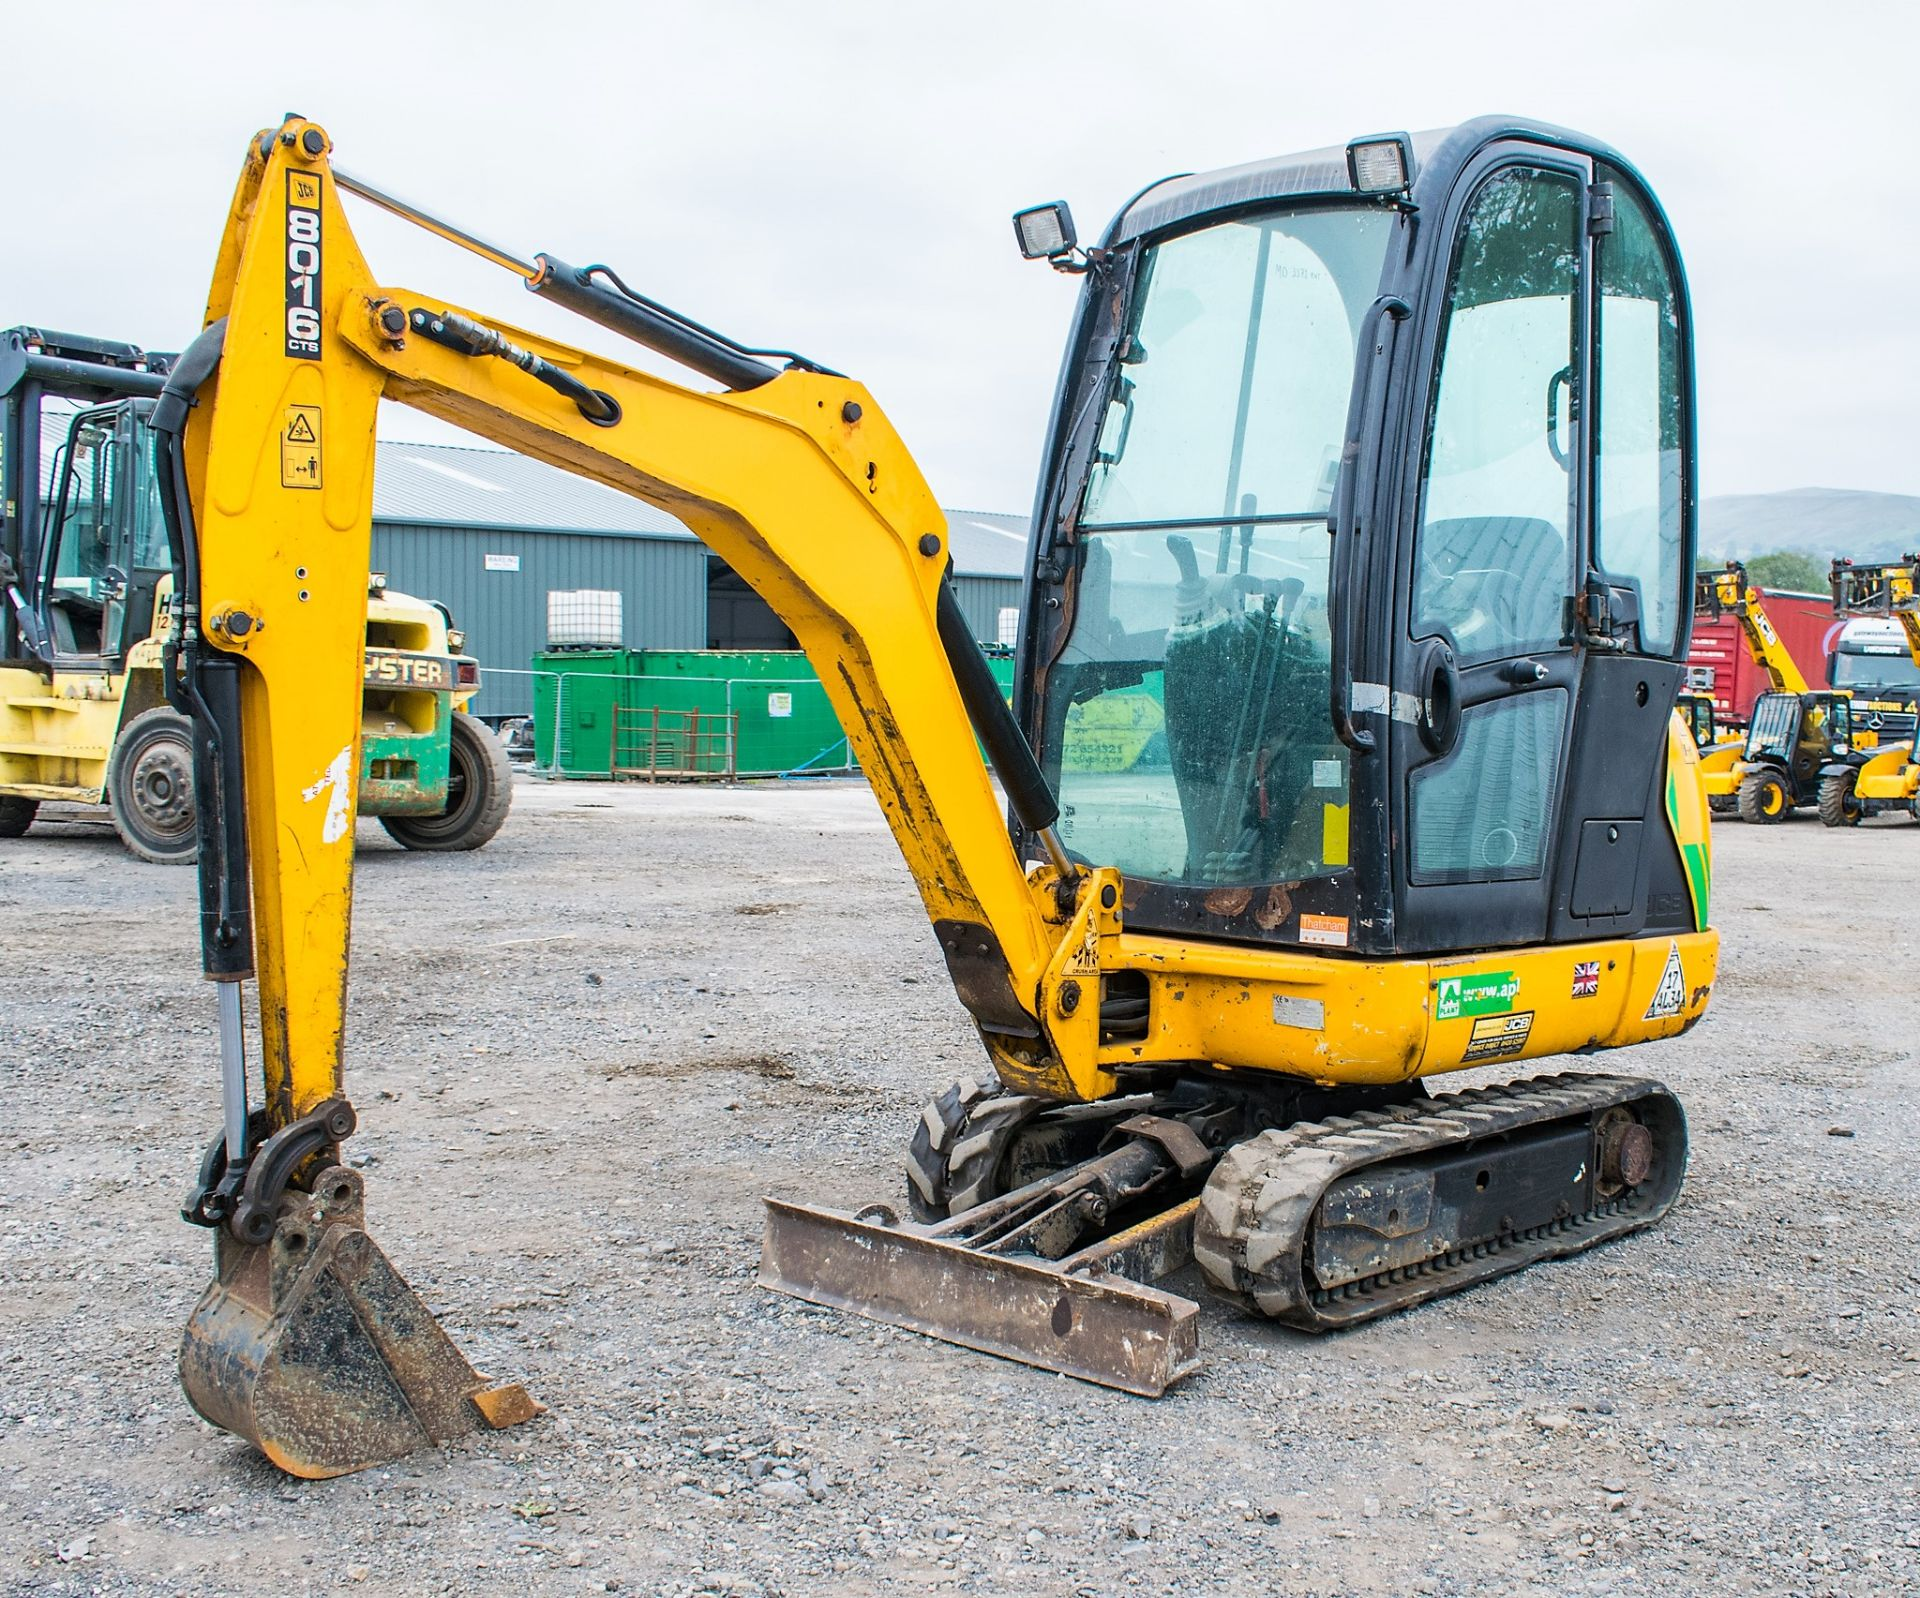 JCB 8016 1.6 tonne rubber tracked excavator  Year: 2015 S/N: 1733 Recorded Hours: 1861 A669405